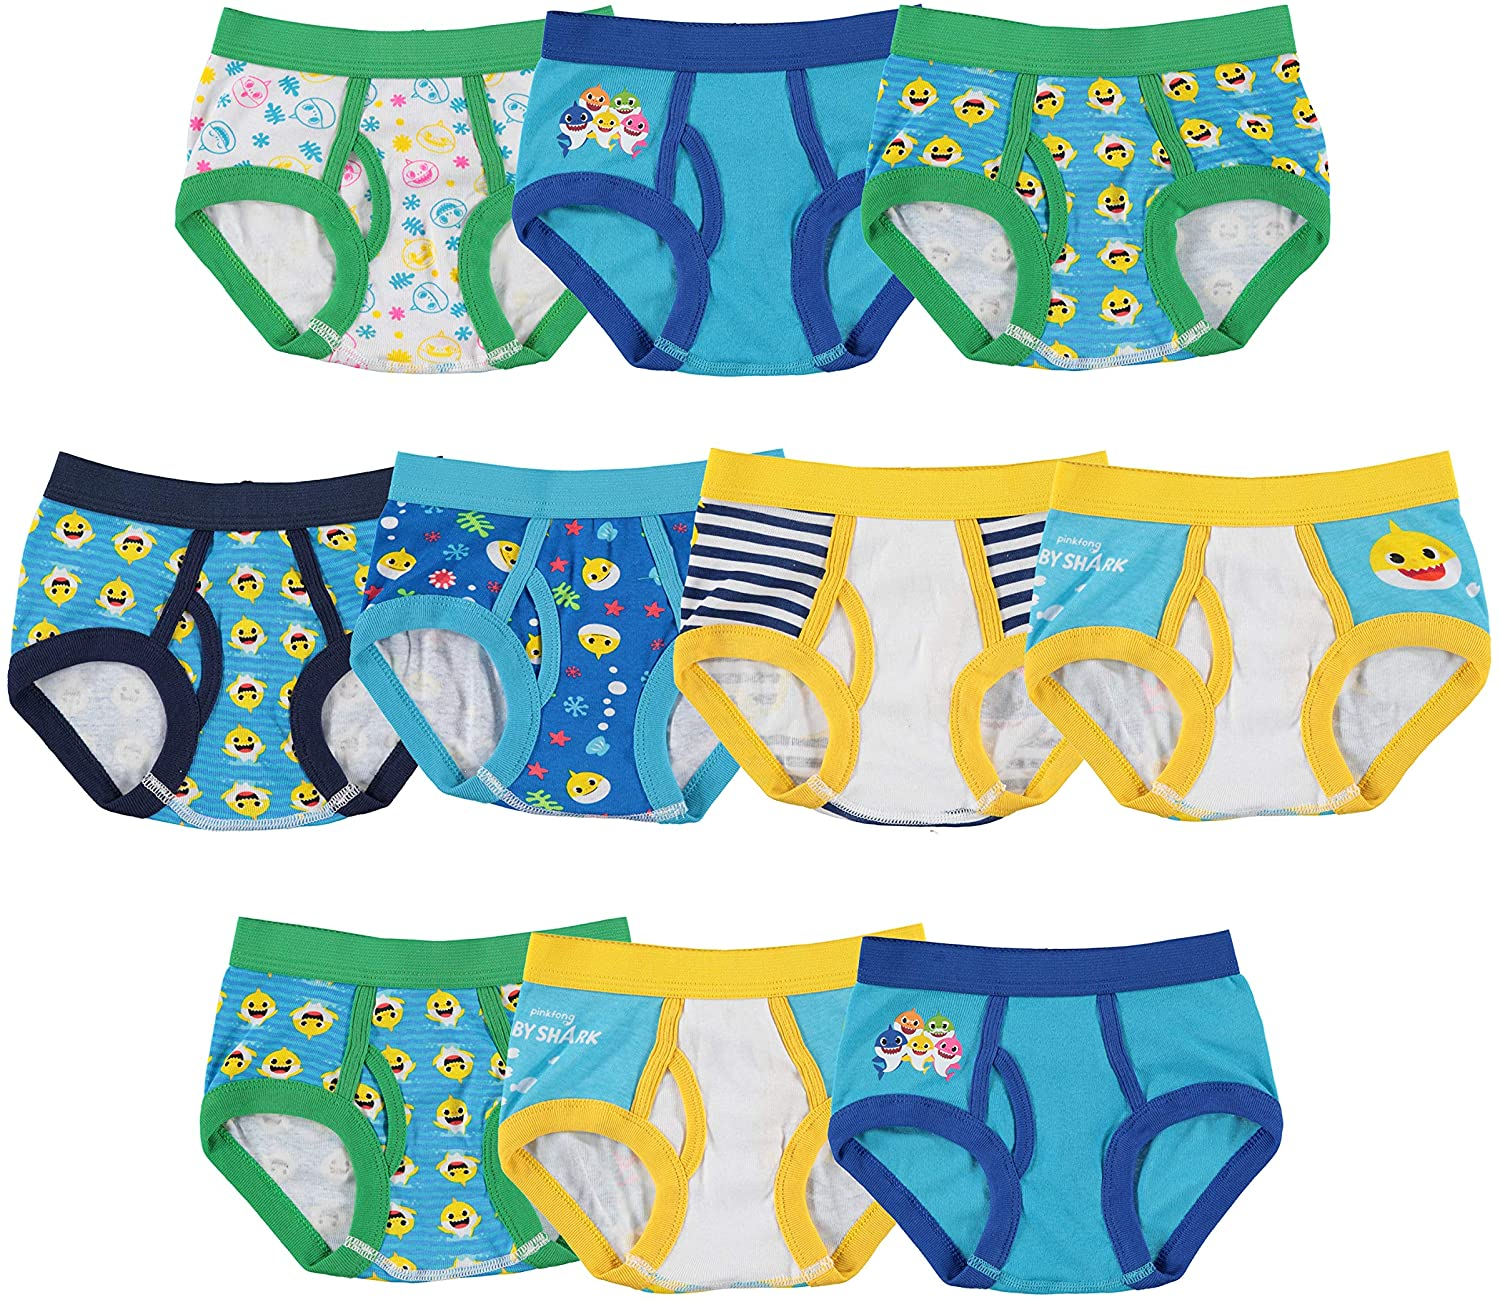 Toddler Boys Briefs 10 pack Size 2T-3T Comfort waistband Brand New in package